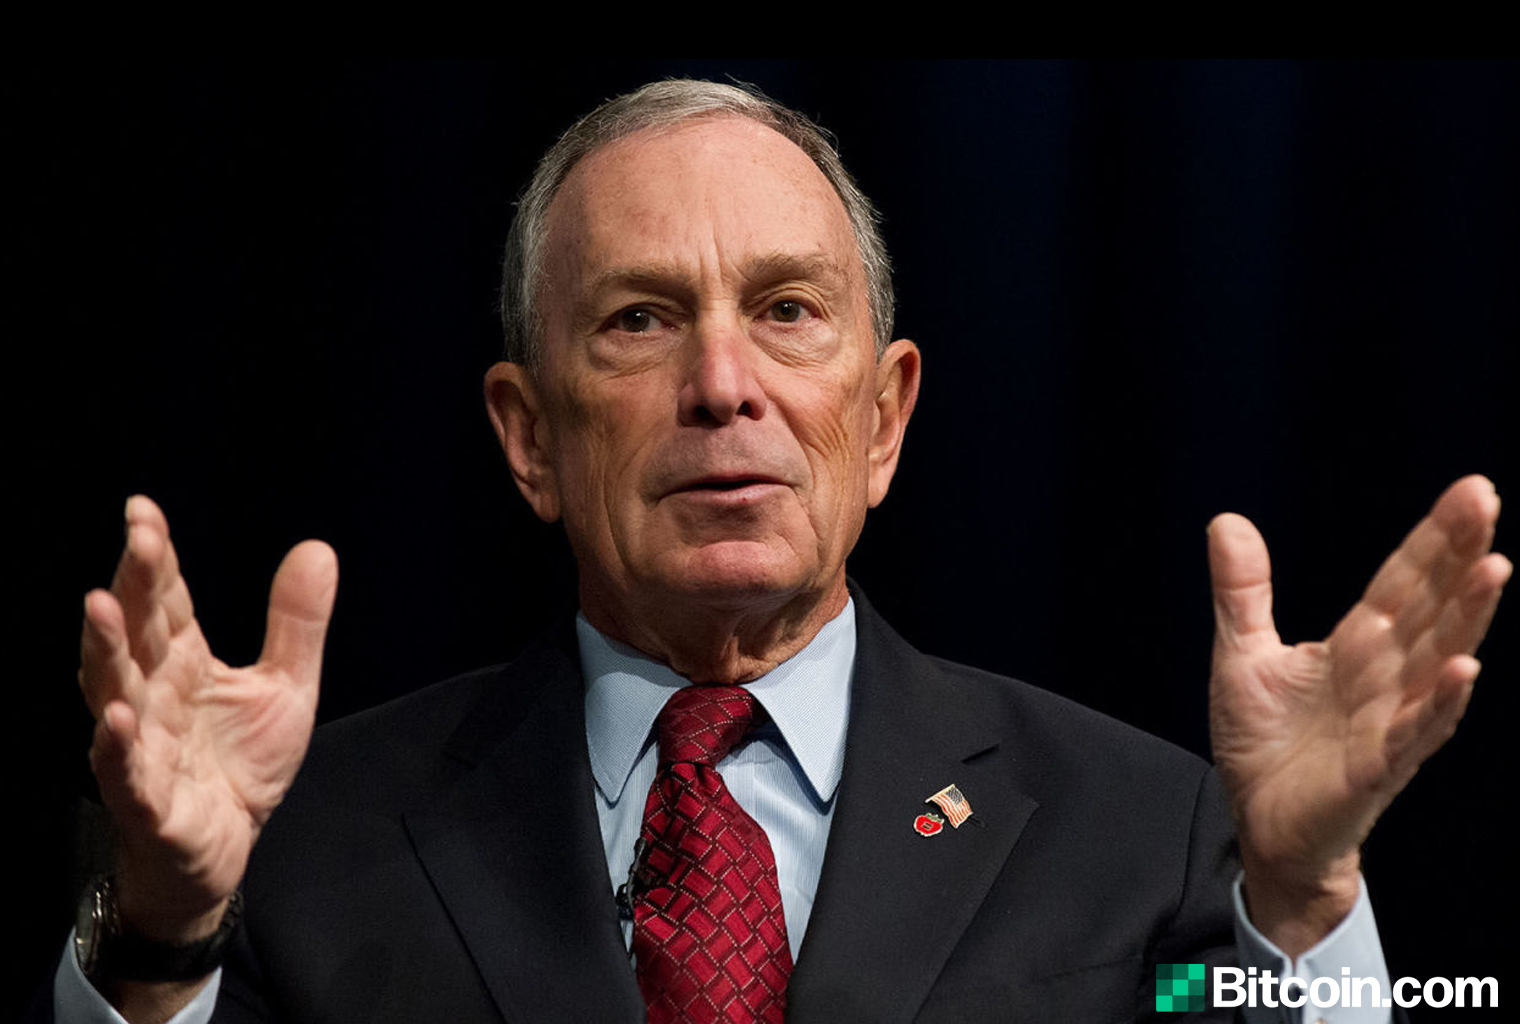 Mike Bloomberg's 2020 Finance Policy Proposes Strict Bitcoin Regulations